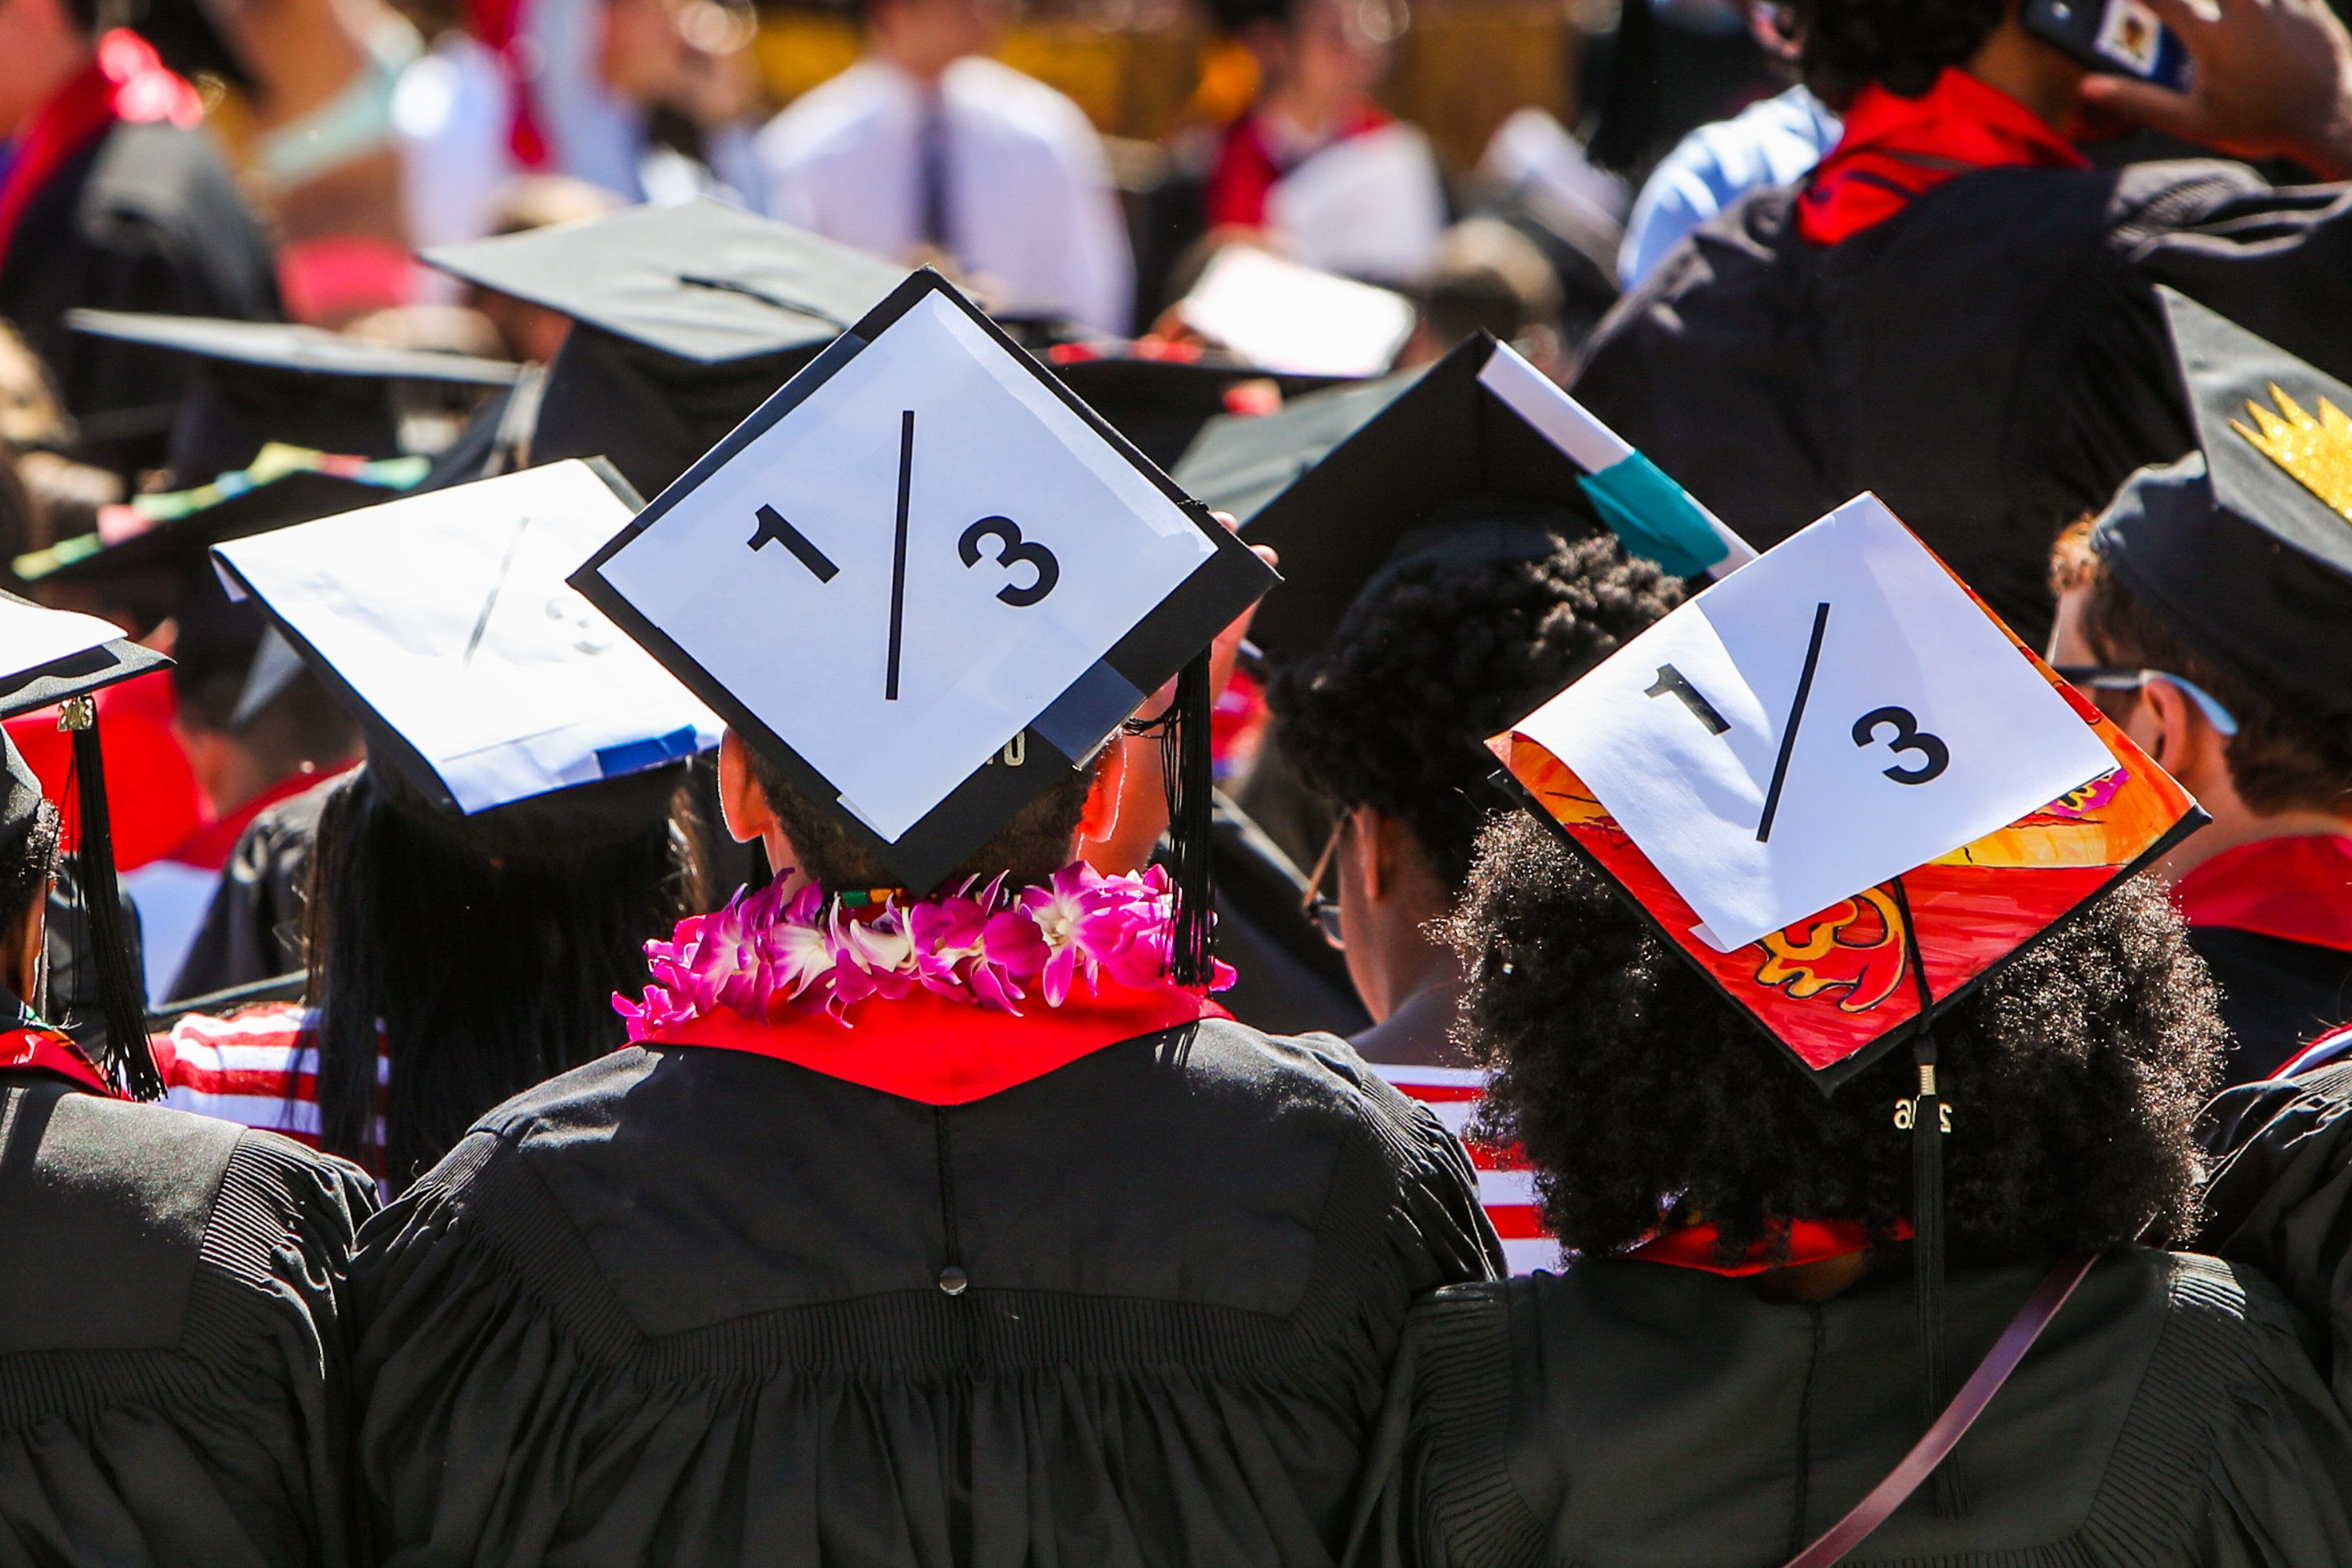 Stanford students wear a 1/3 sign on their caps to show solidarity for a Stanford rape victim during...